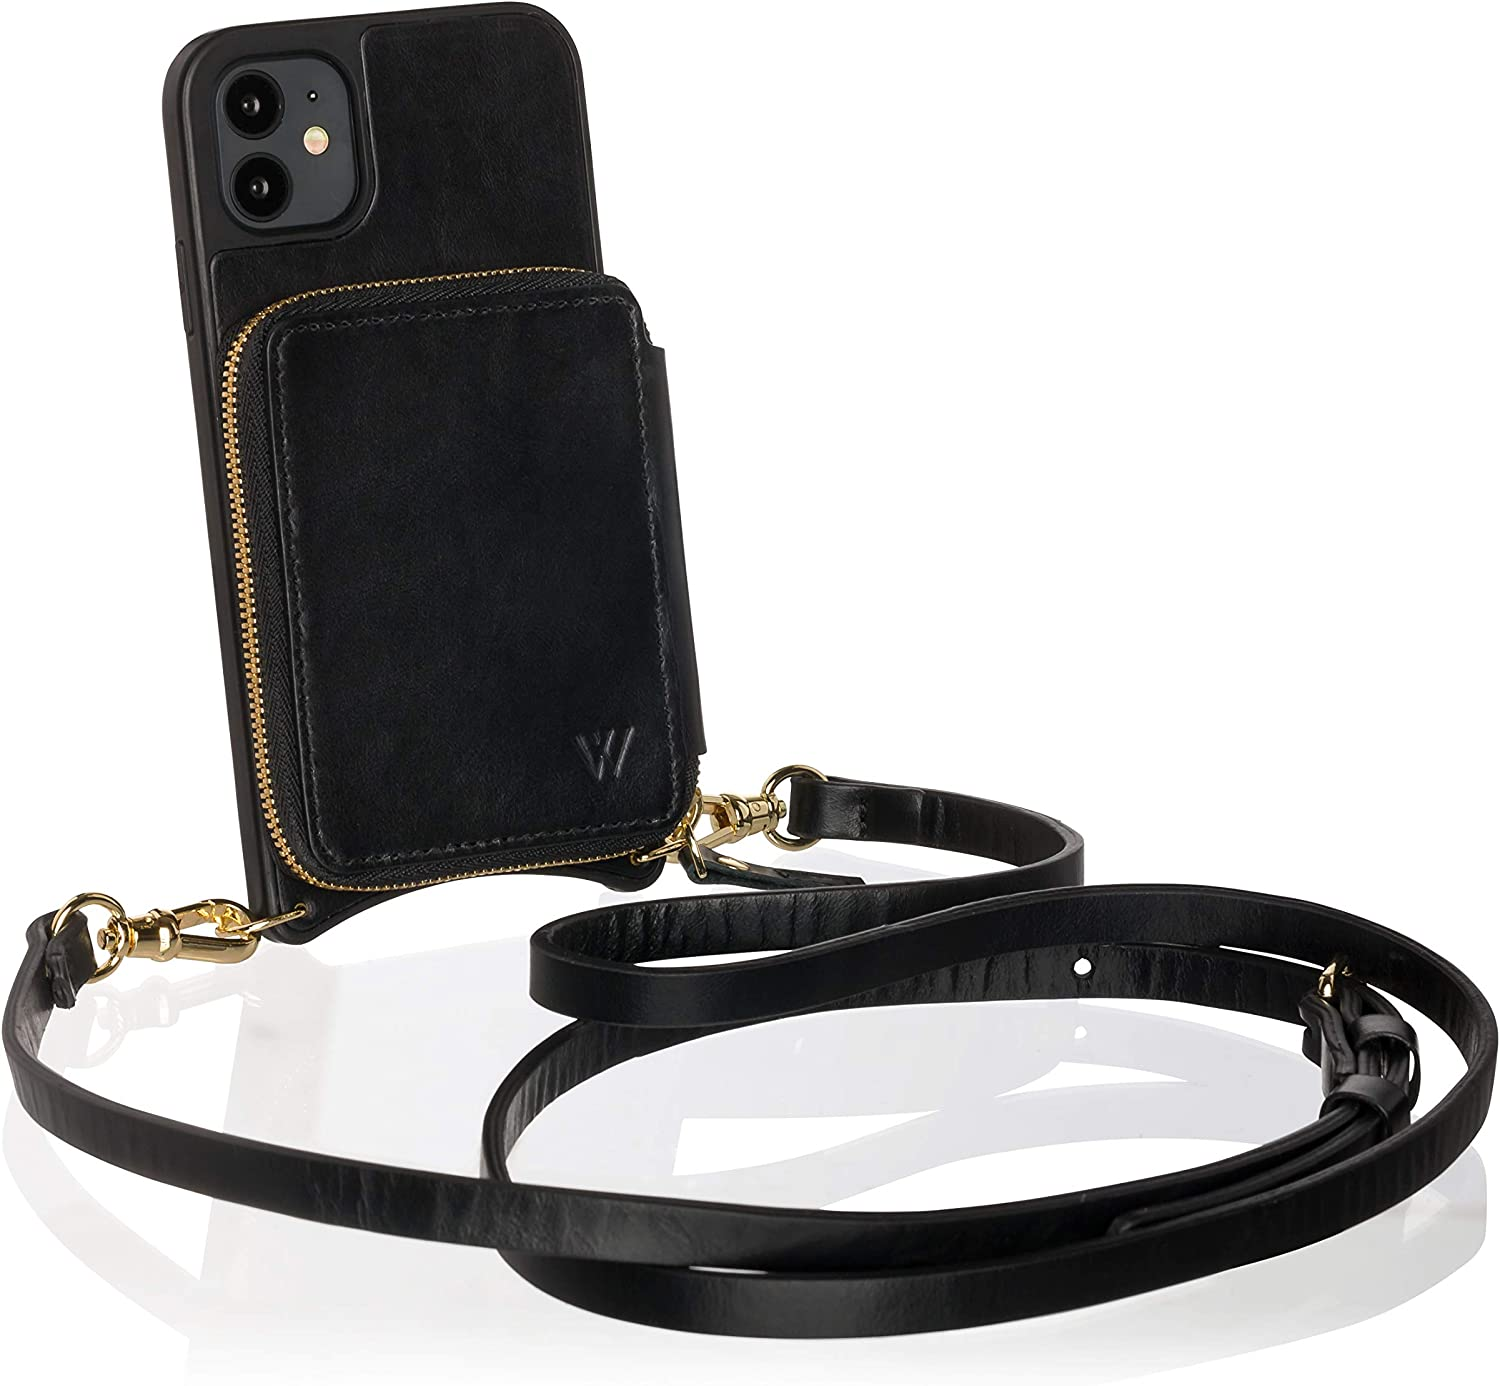 Wilken iPhone 11 Pro Crossbody Wallet Purse Case | Removable Wristlet and Shoulder Strap | Genuine Leather | Holds Cash and Credit Cards in Zipper Pouch (Black, 11 Pro)